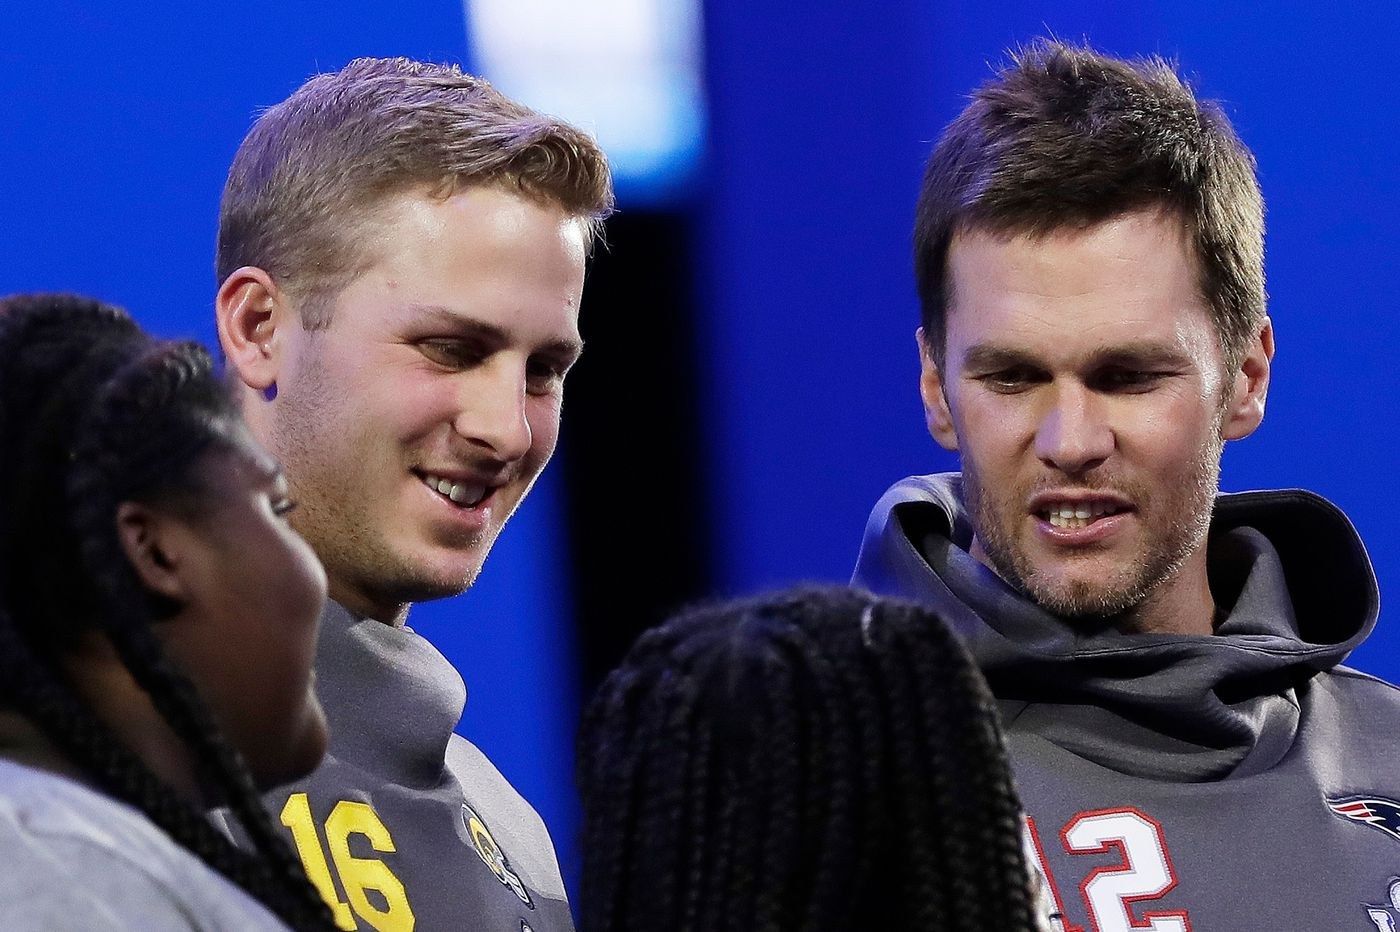 Tom Brady Shares Awesome, Fitting Instagram Post On Eve Of Super Bowl